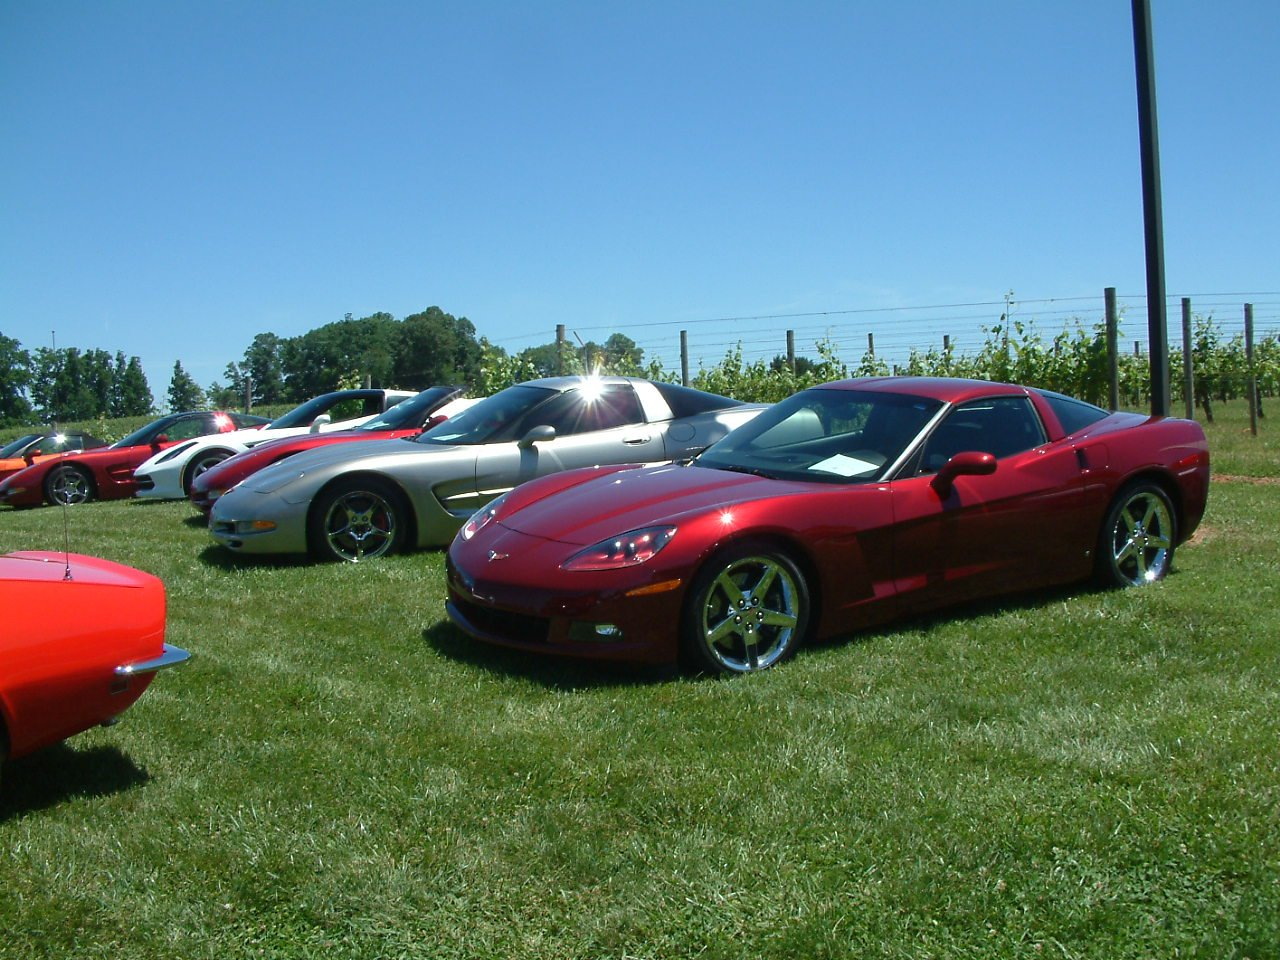 used cars for sale monroe used car dealers near. Black Bedroom Furniture Sets. Home Design Ideas